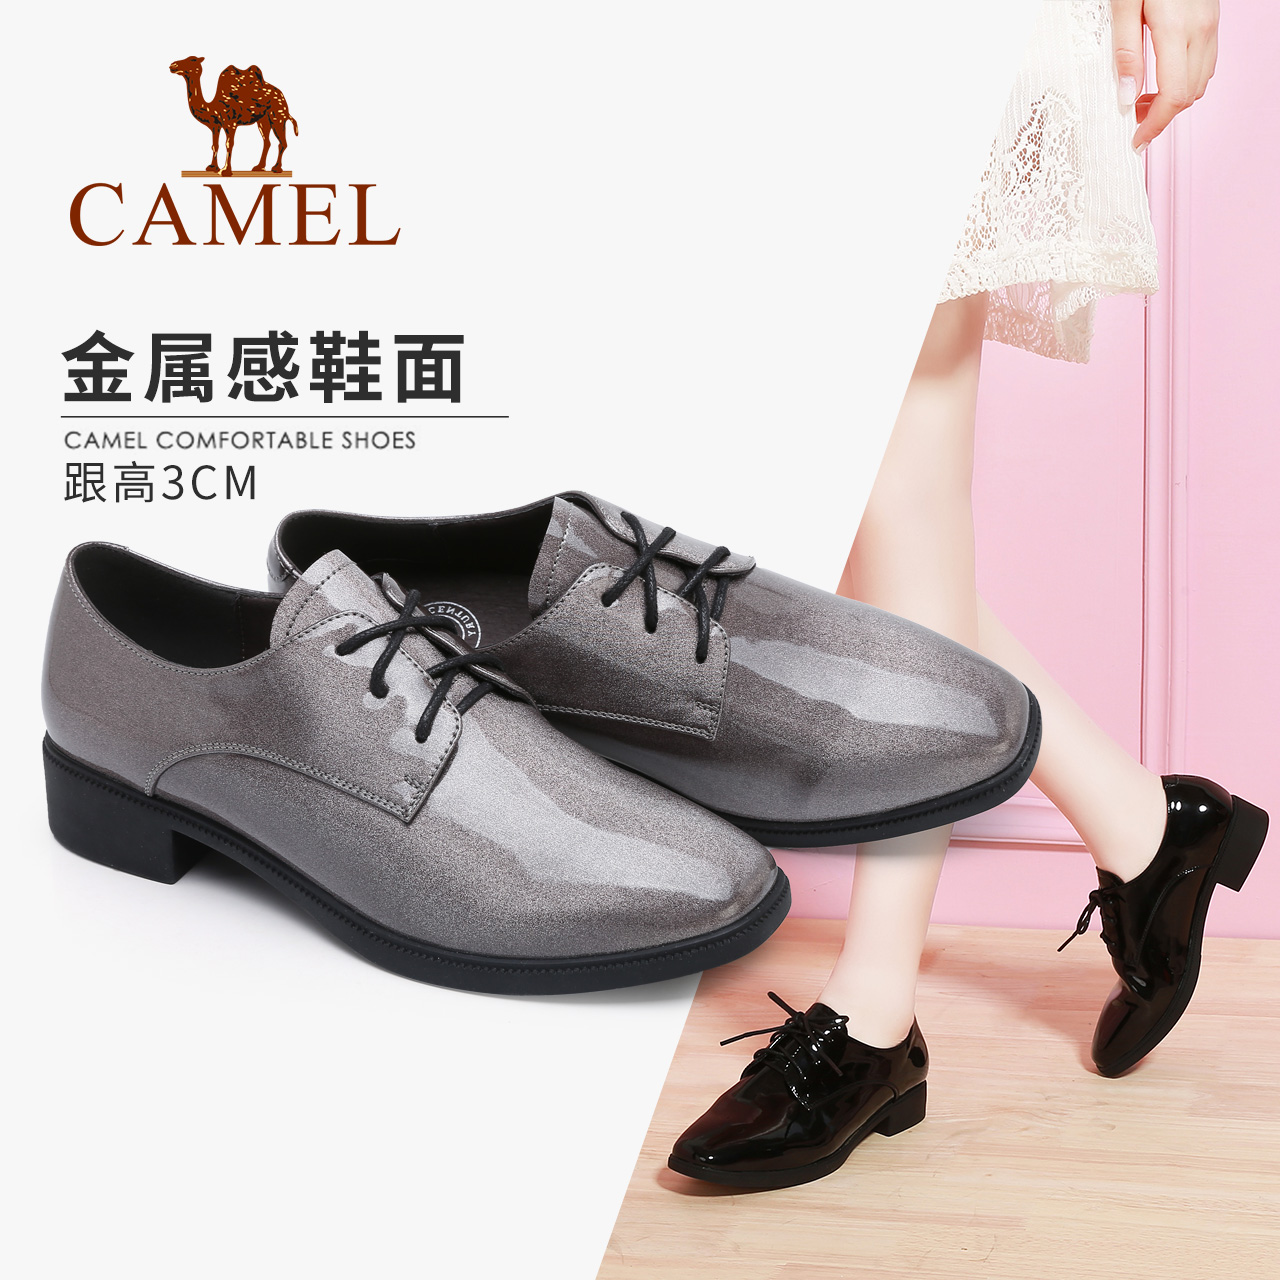 Camel Shoes Autumn Lacquered Leather Shoes Fashion British Medium-heel Flat-soled Round-toed Single Shoes Deep-mouthed Leisure Shoes